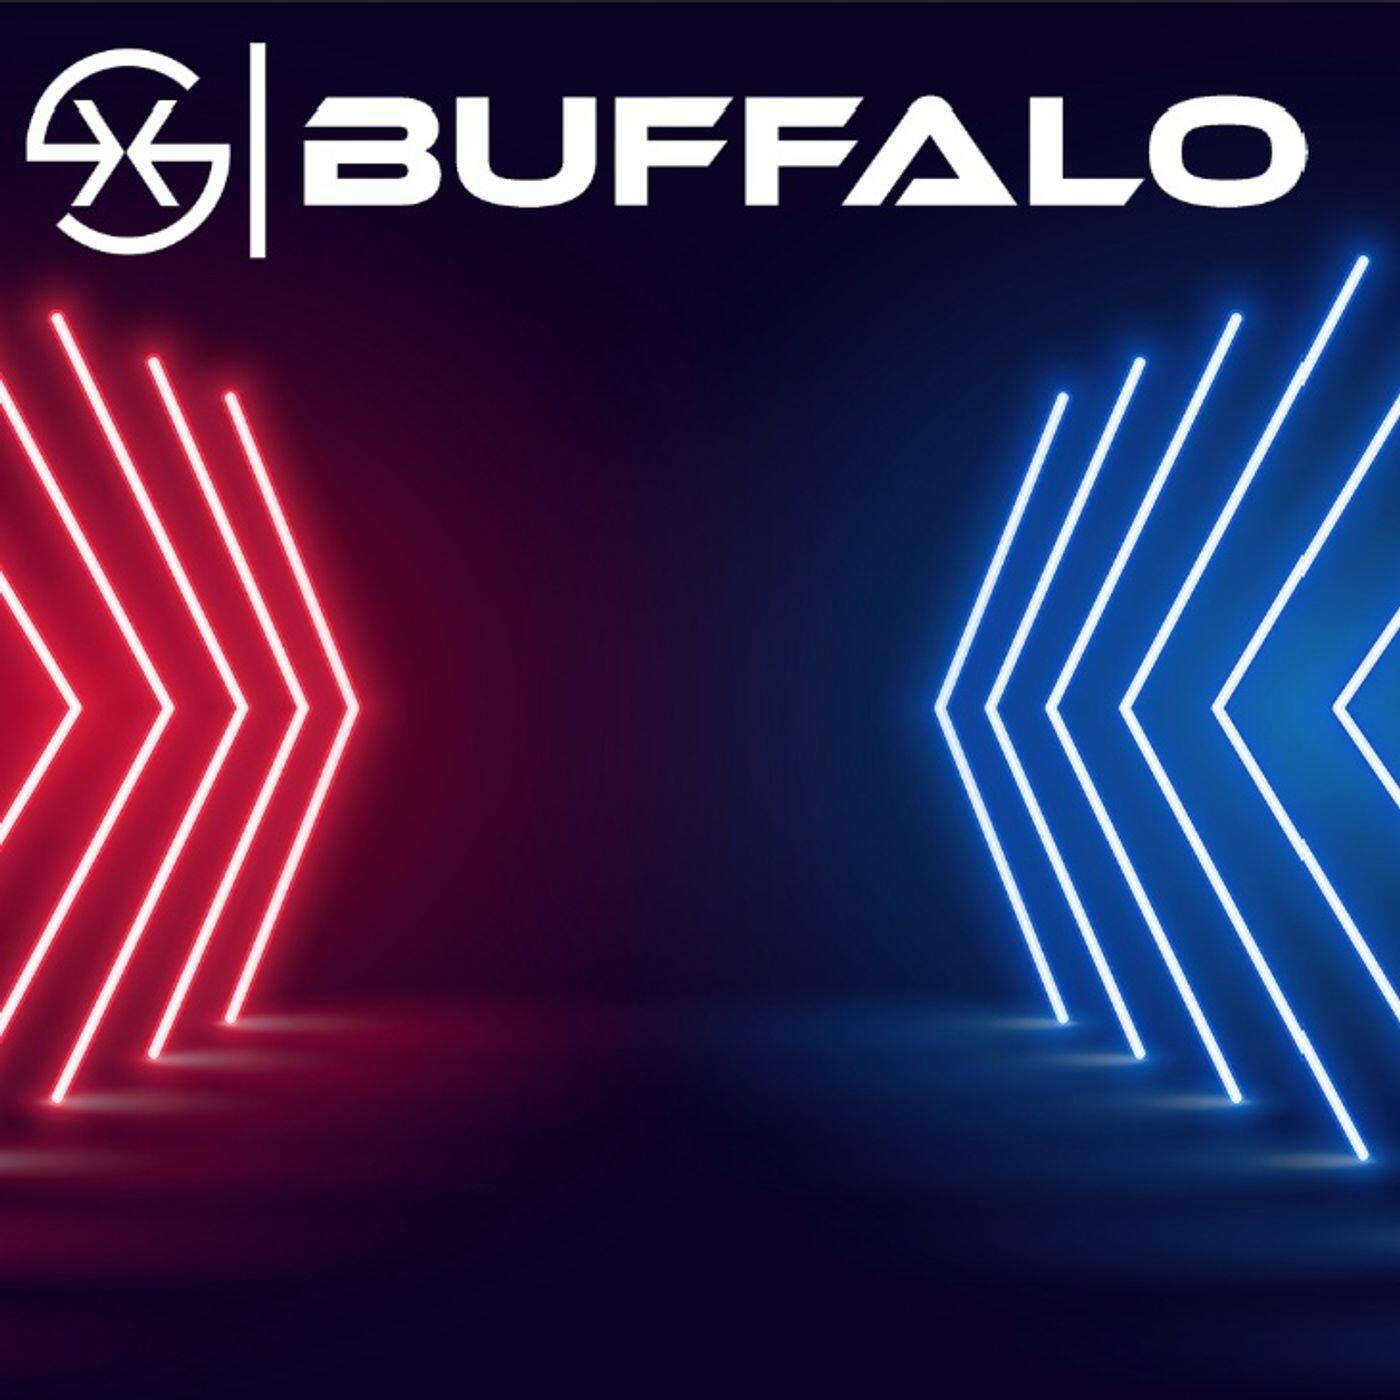 Listen to Buffalo Bills OTA Updates, Press Conference Reactions, and RB Preview | Cover 1 | Buffalo | Podcasts | iHeartRadio